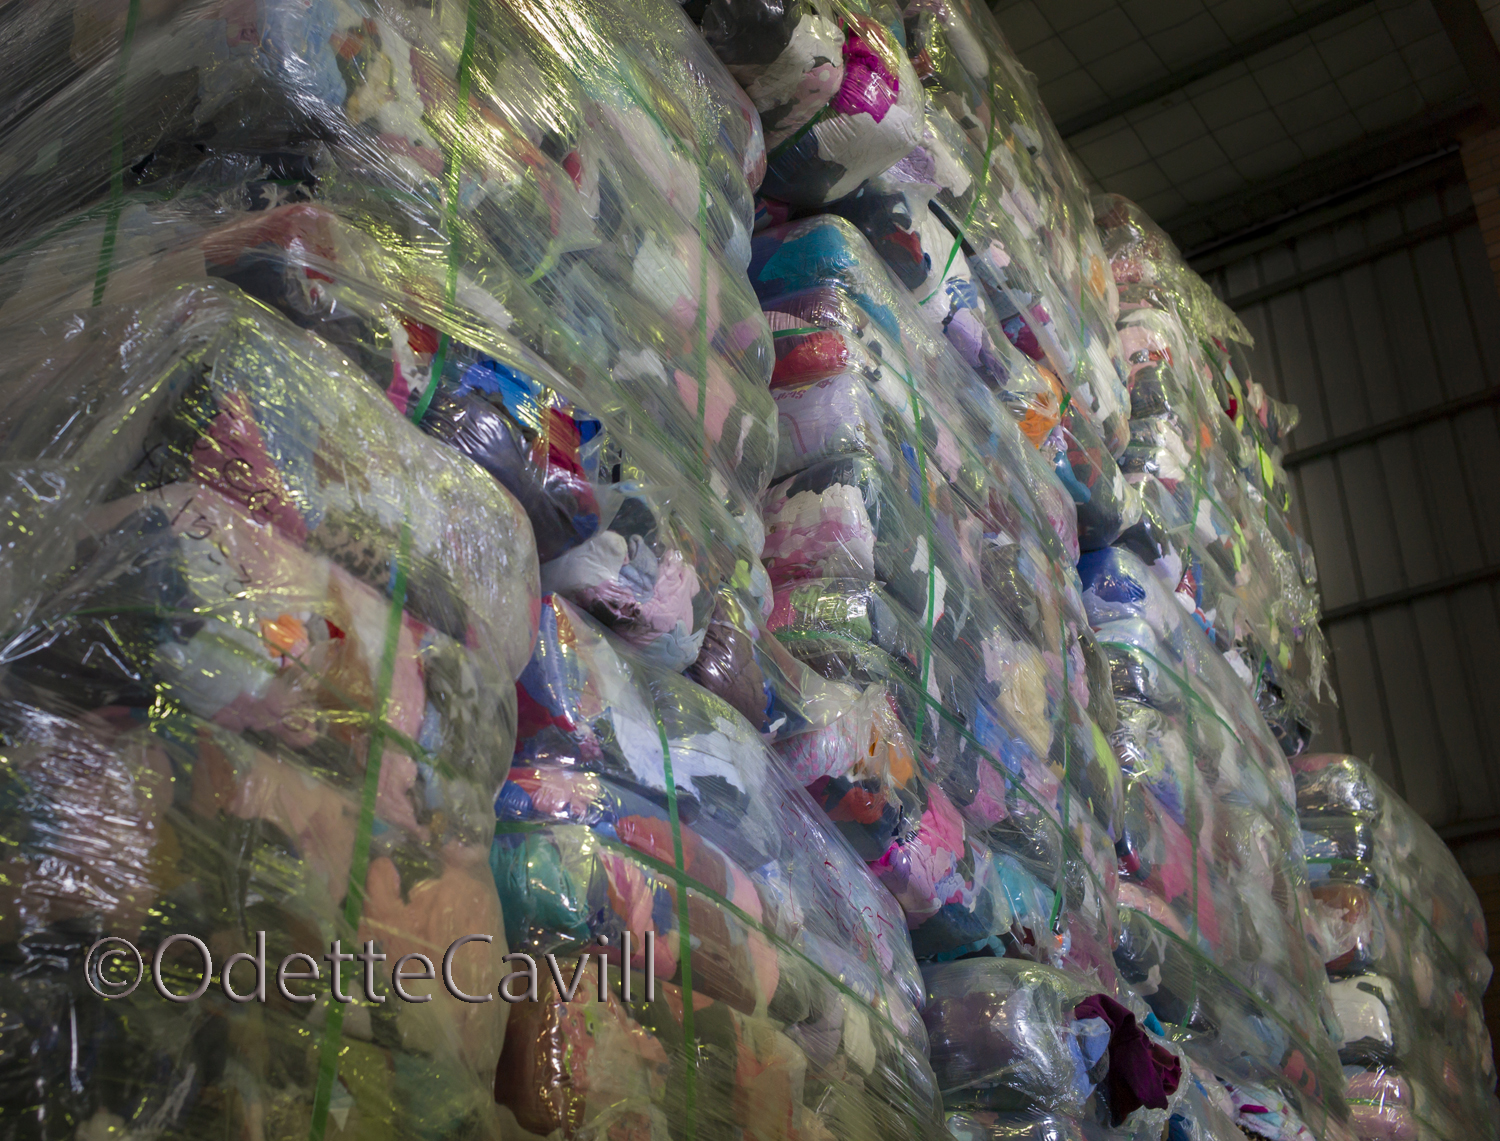 The Busines of Recycling - West Australia > Malaysia > West Aust